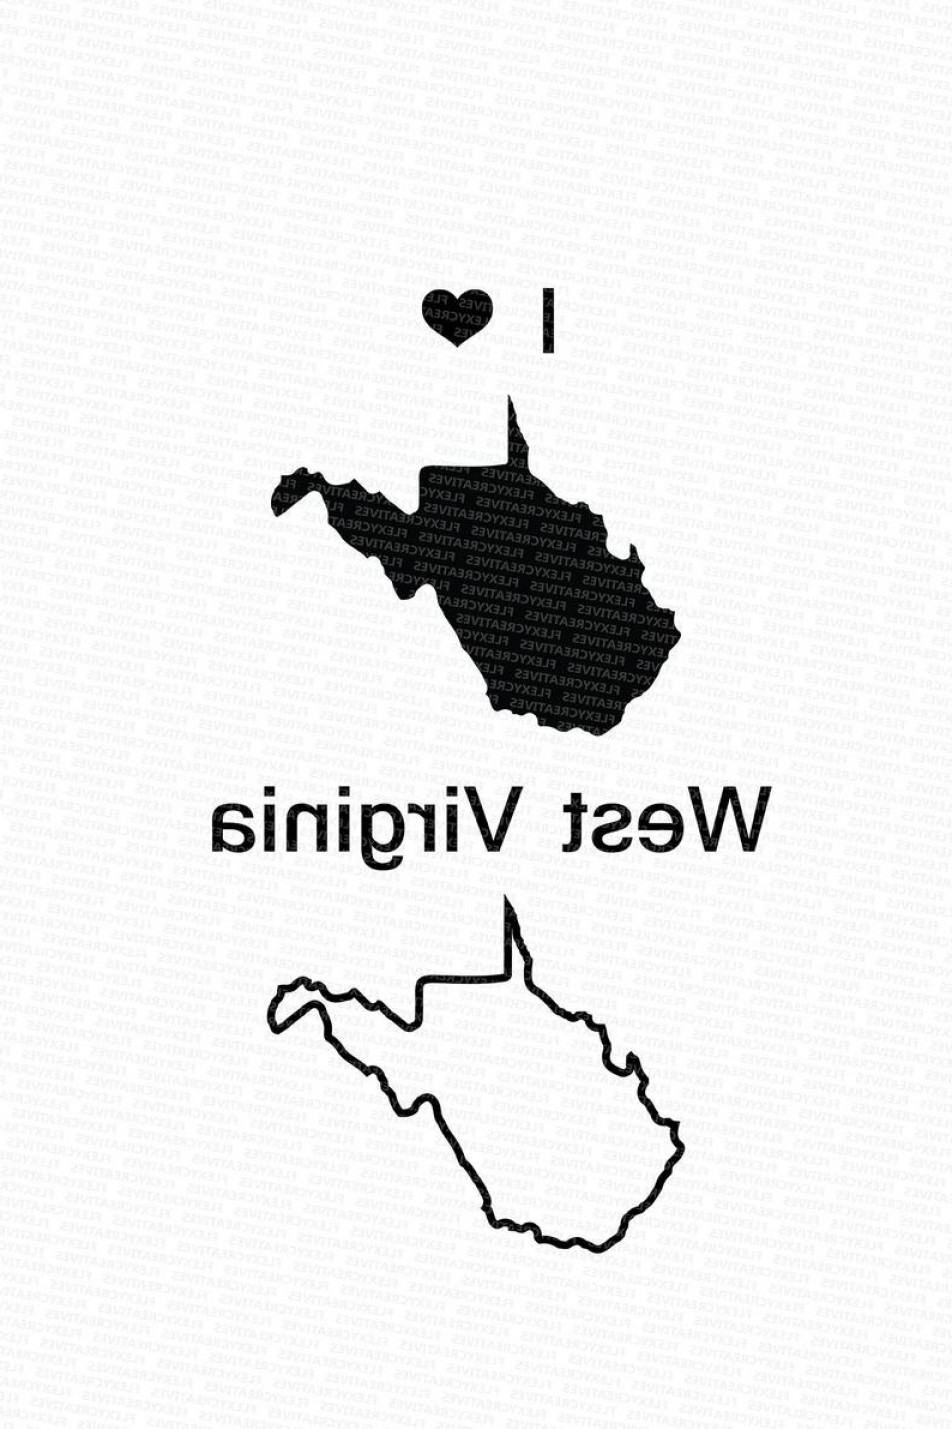 West Virginia Vector Files: West Virginia Vector State Clipart West